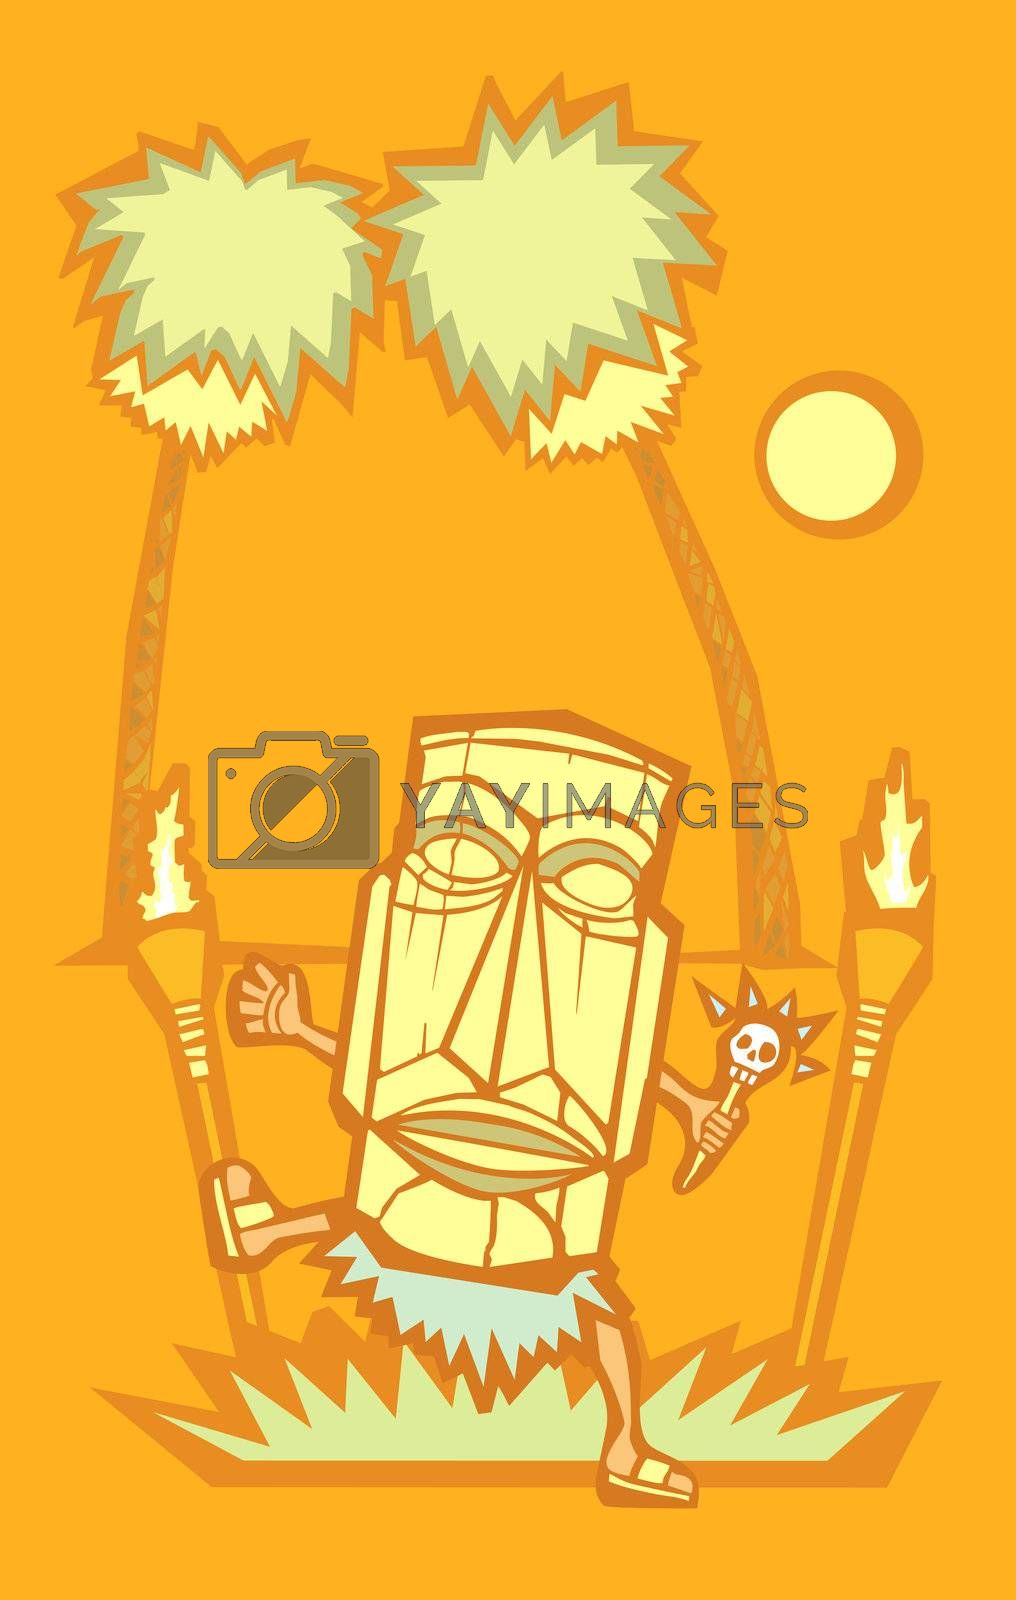 Retro styled Witchdoctor with Tiki mask and skull wand.